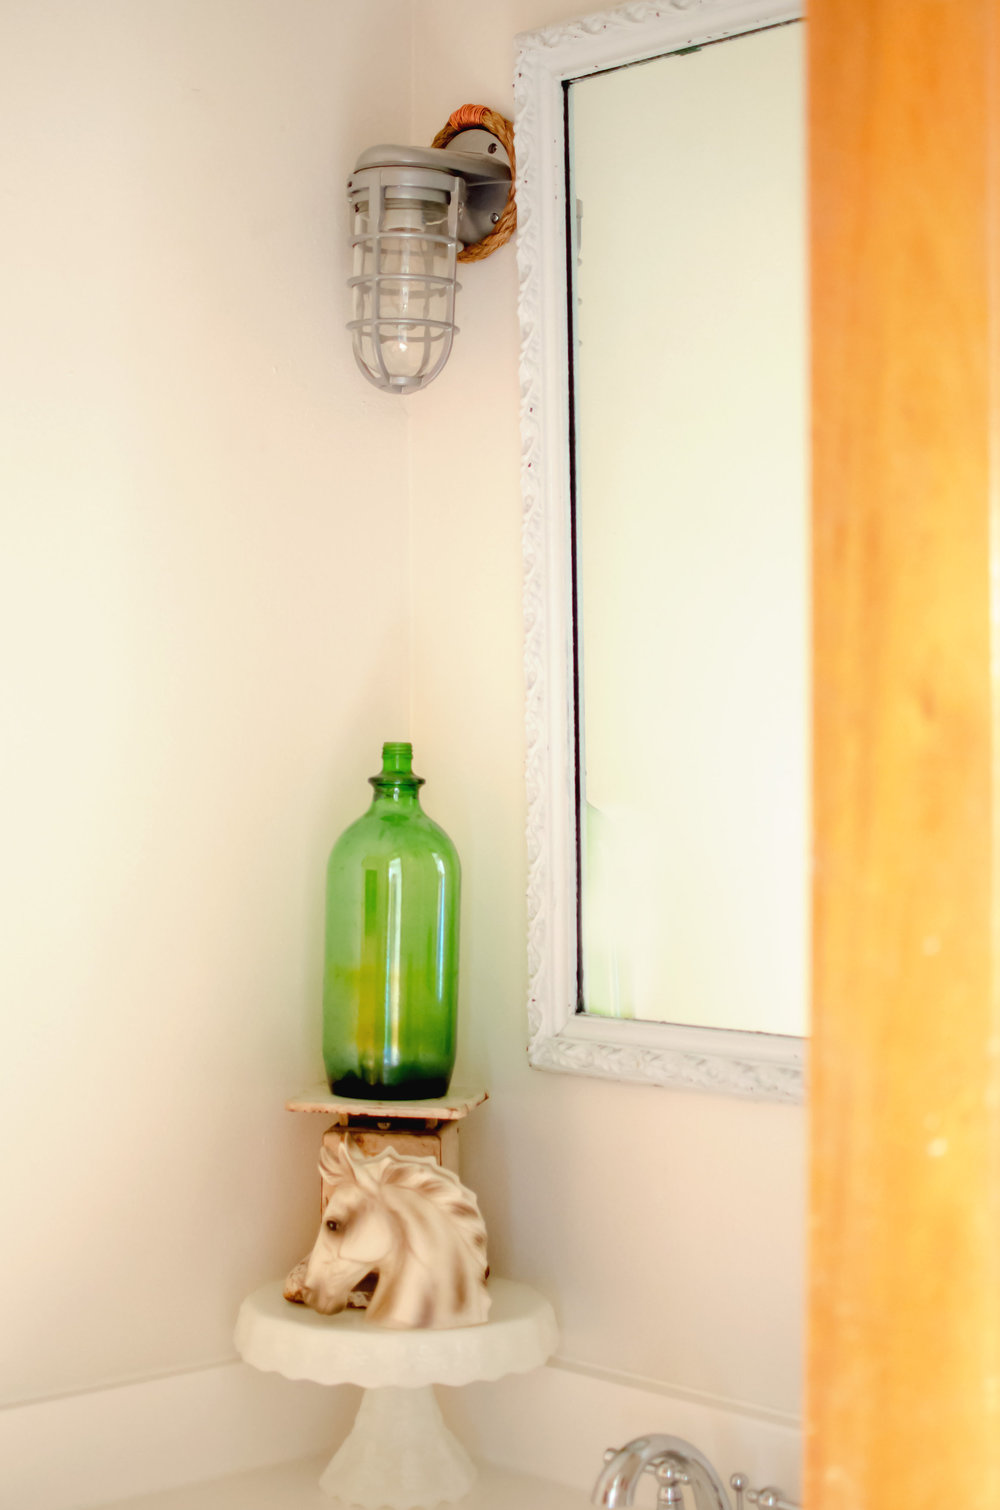 Vintage green glass bottle with a horse figurine as unique and unexpected decor. | hprallandco.com